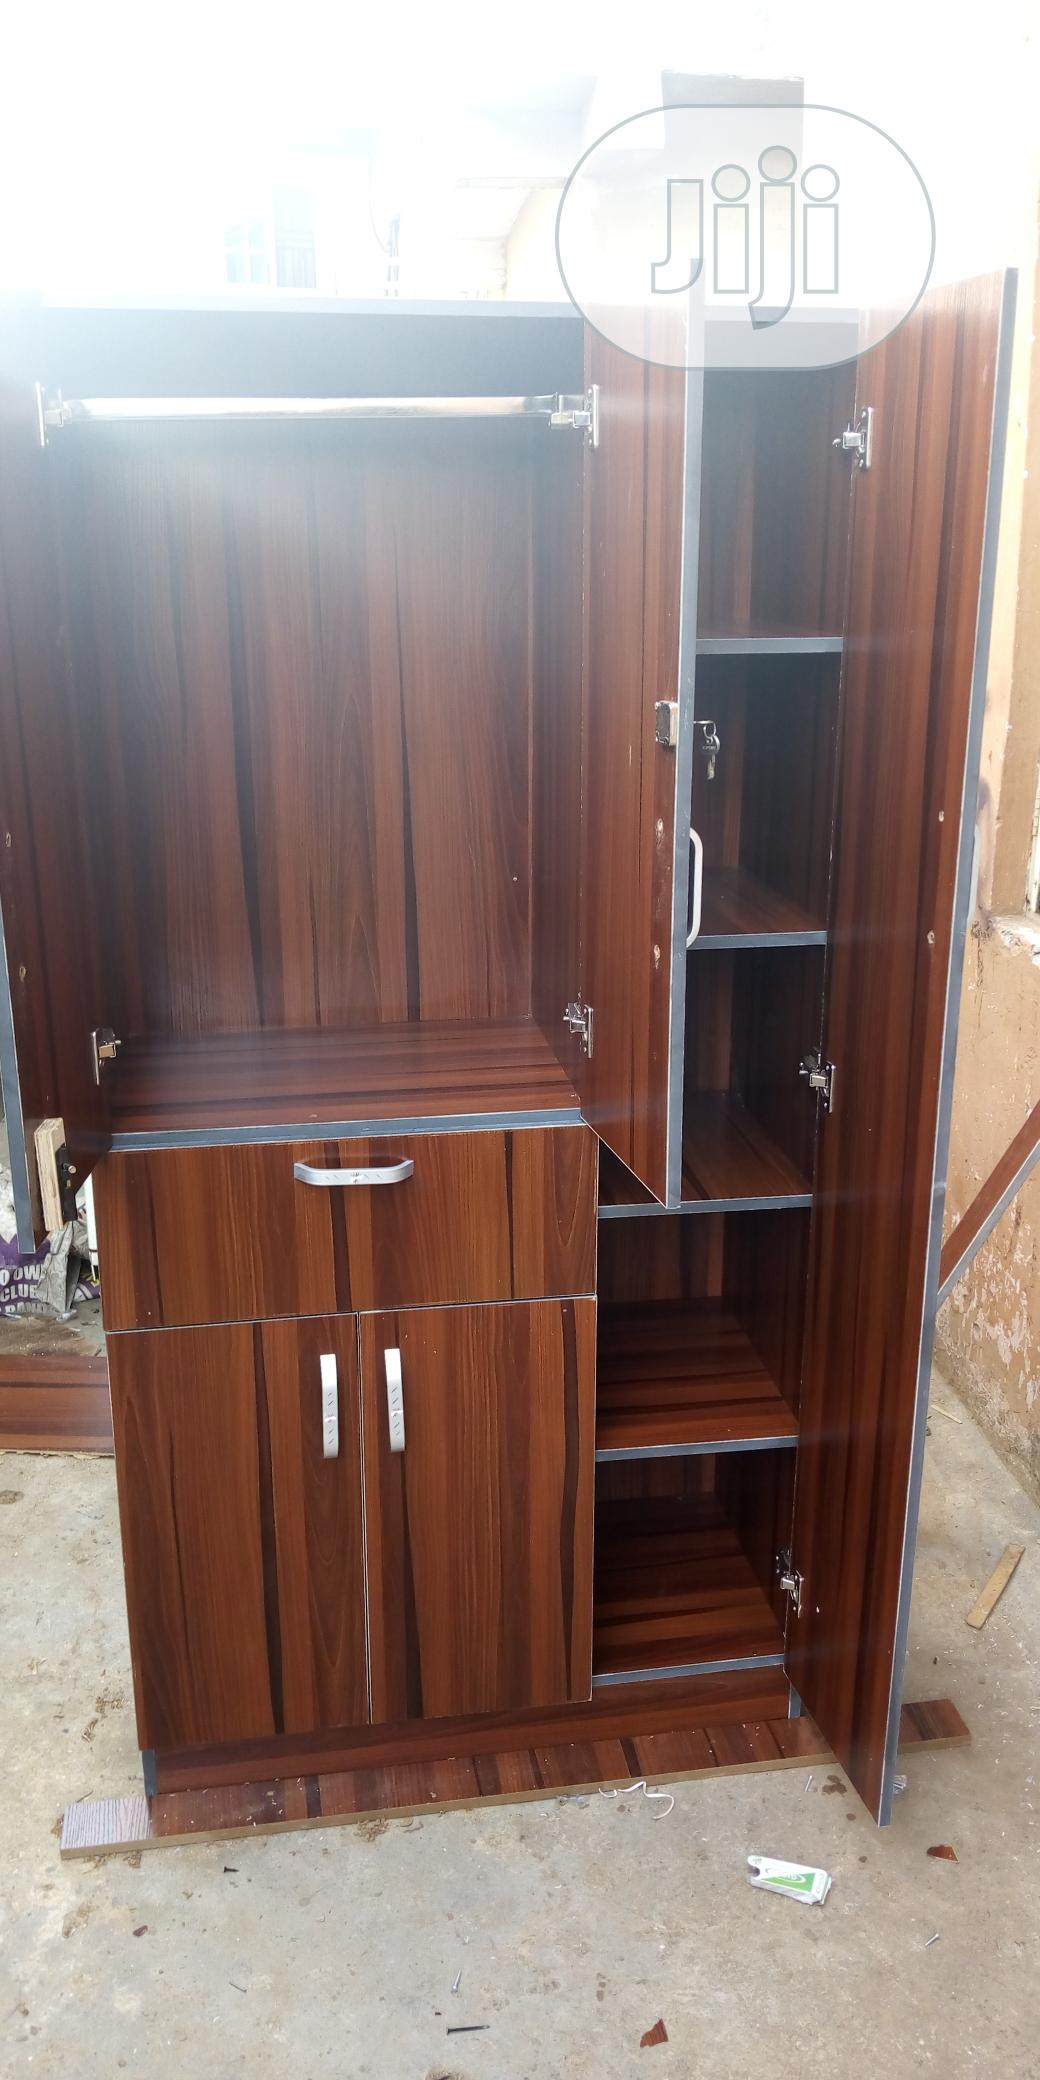 6ft X 3ft Wardrobe   Furniture for sale in Lagos State, Nigeria